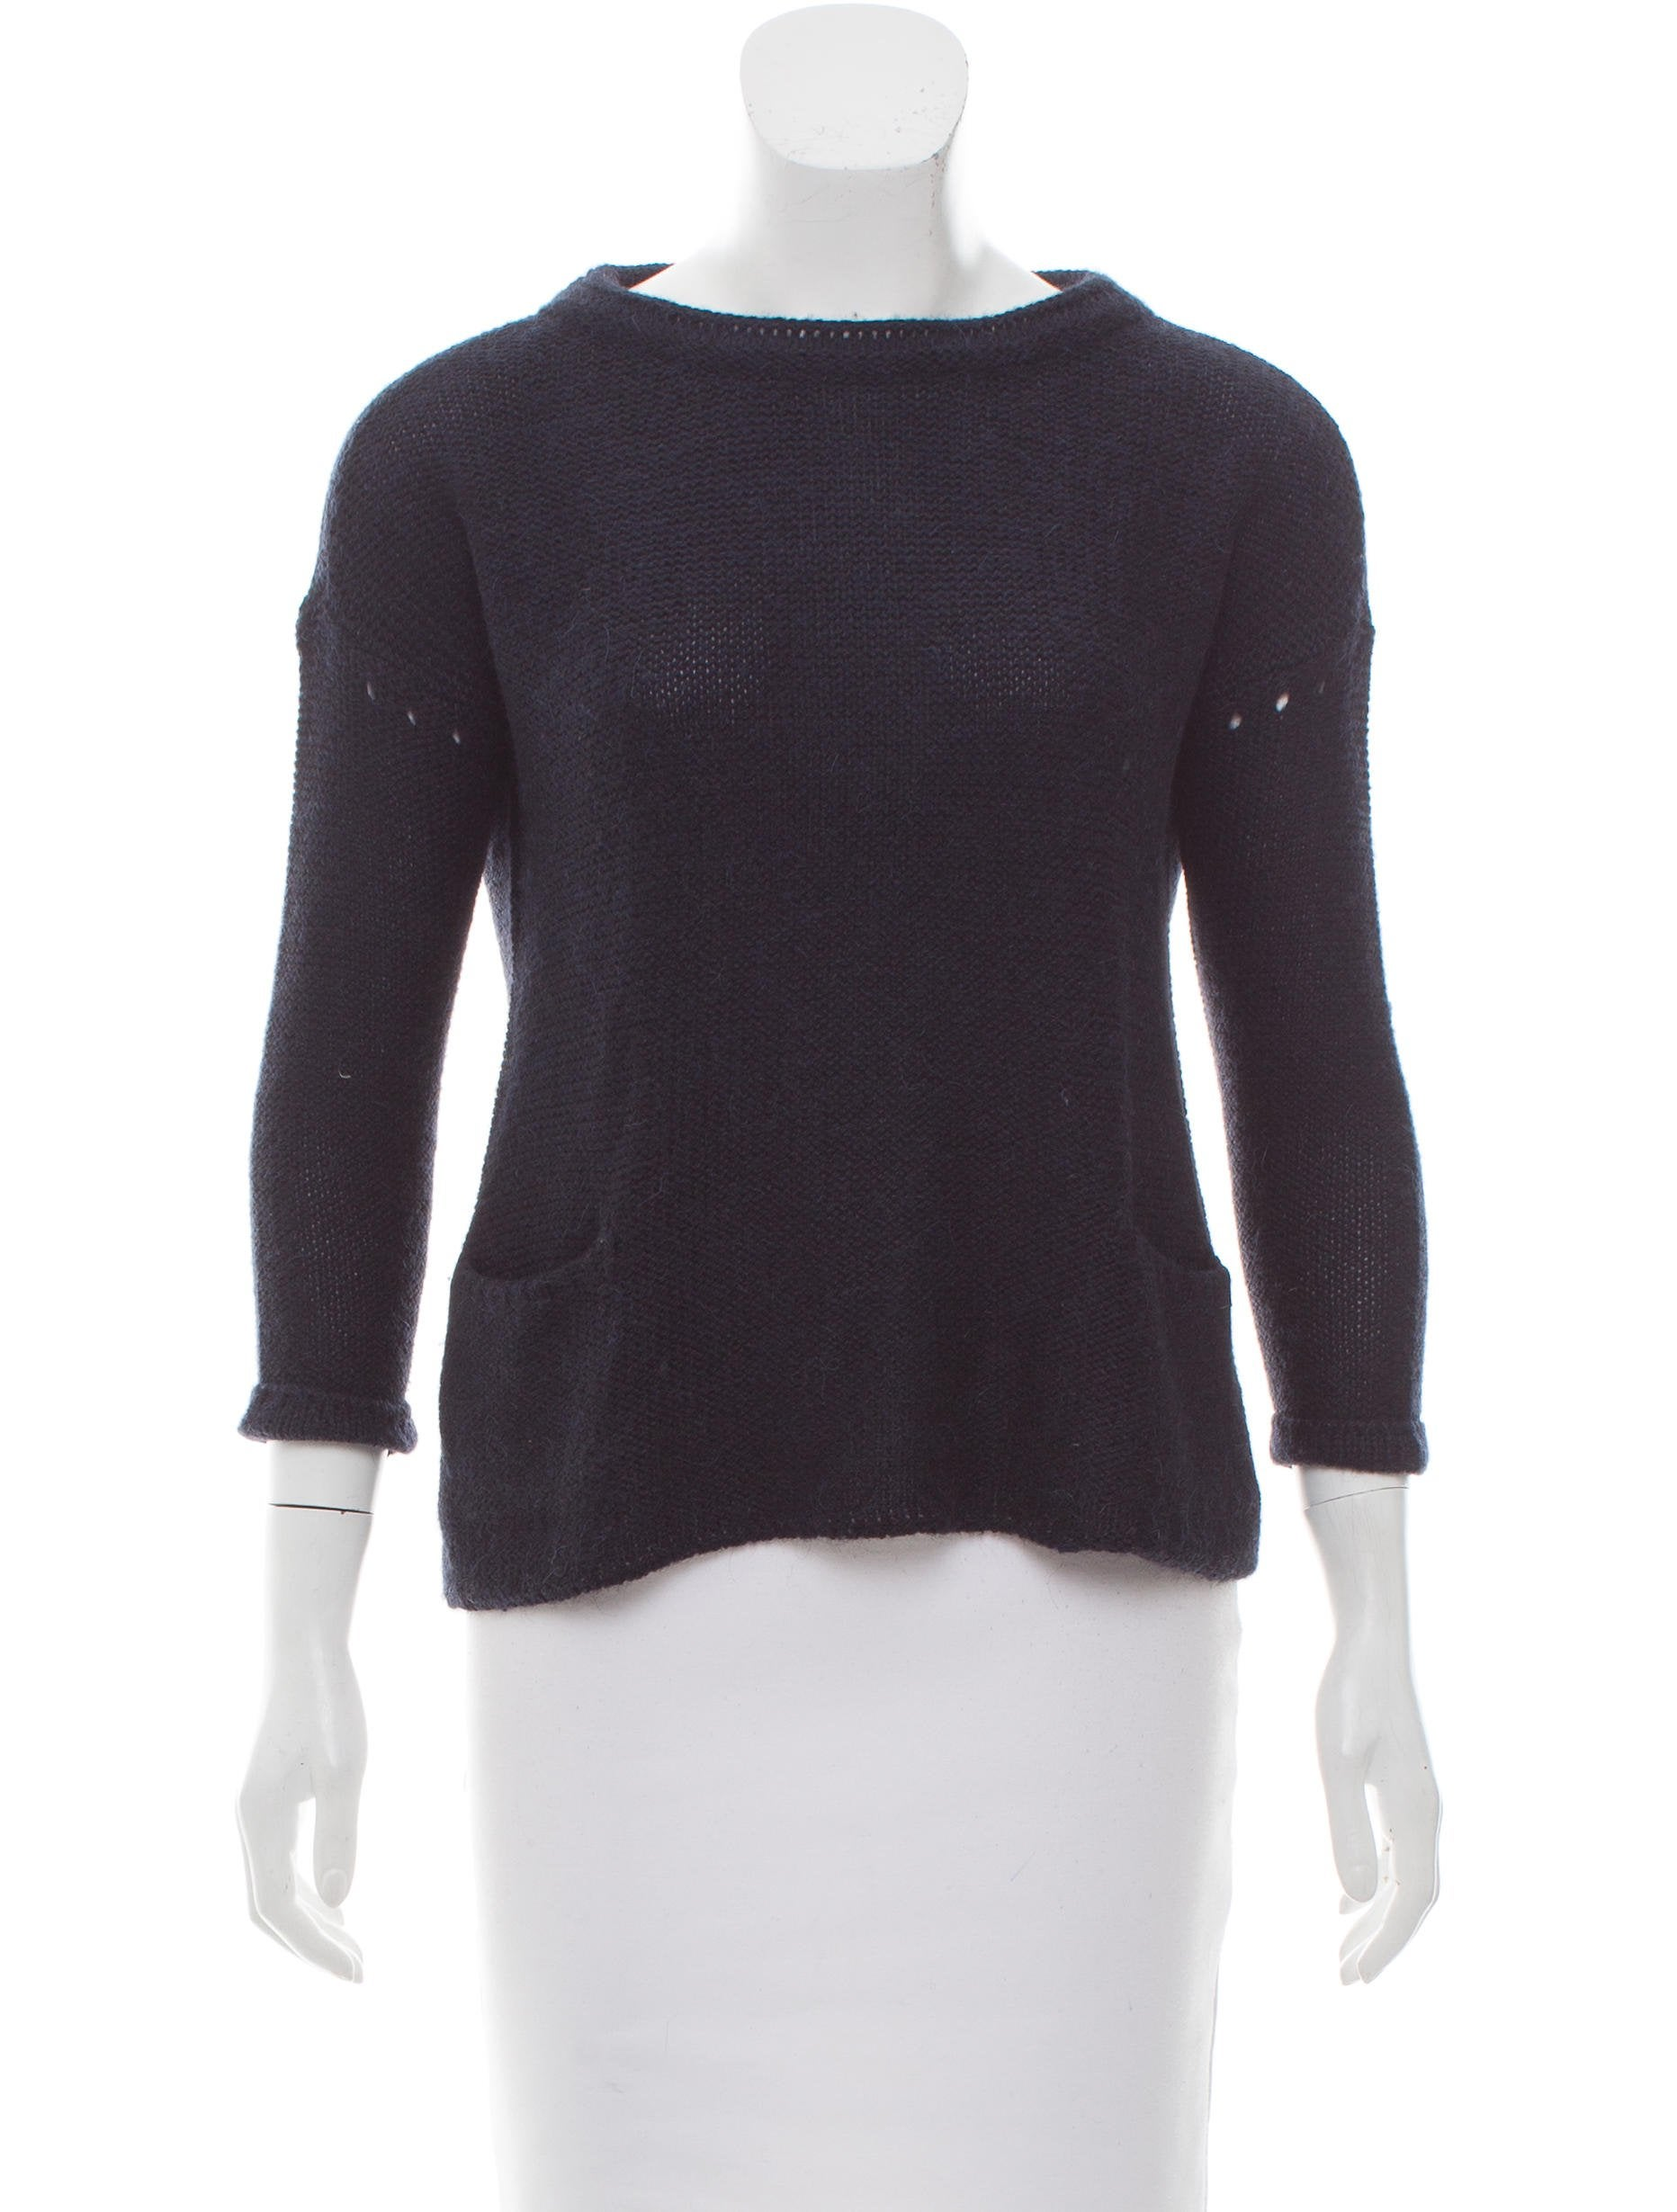 Free Shipping Discount Outlet Shop For Ulla Johnson Bateau Neck Sweater z81Dk